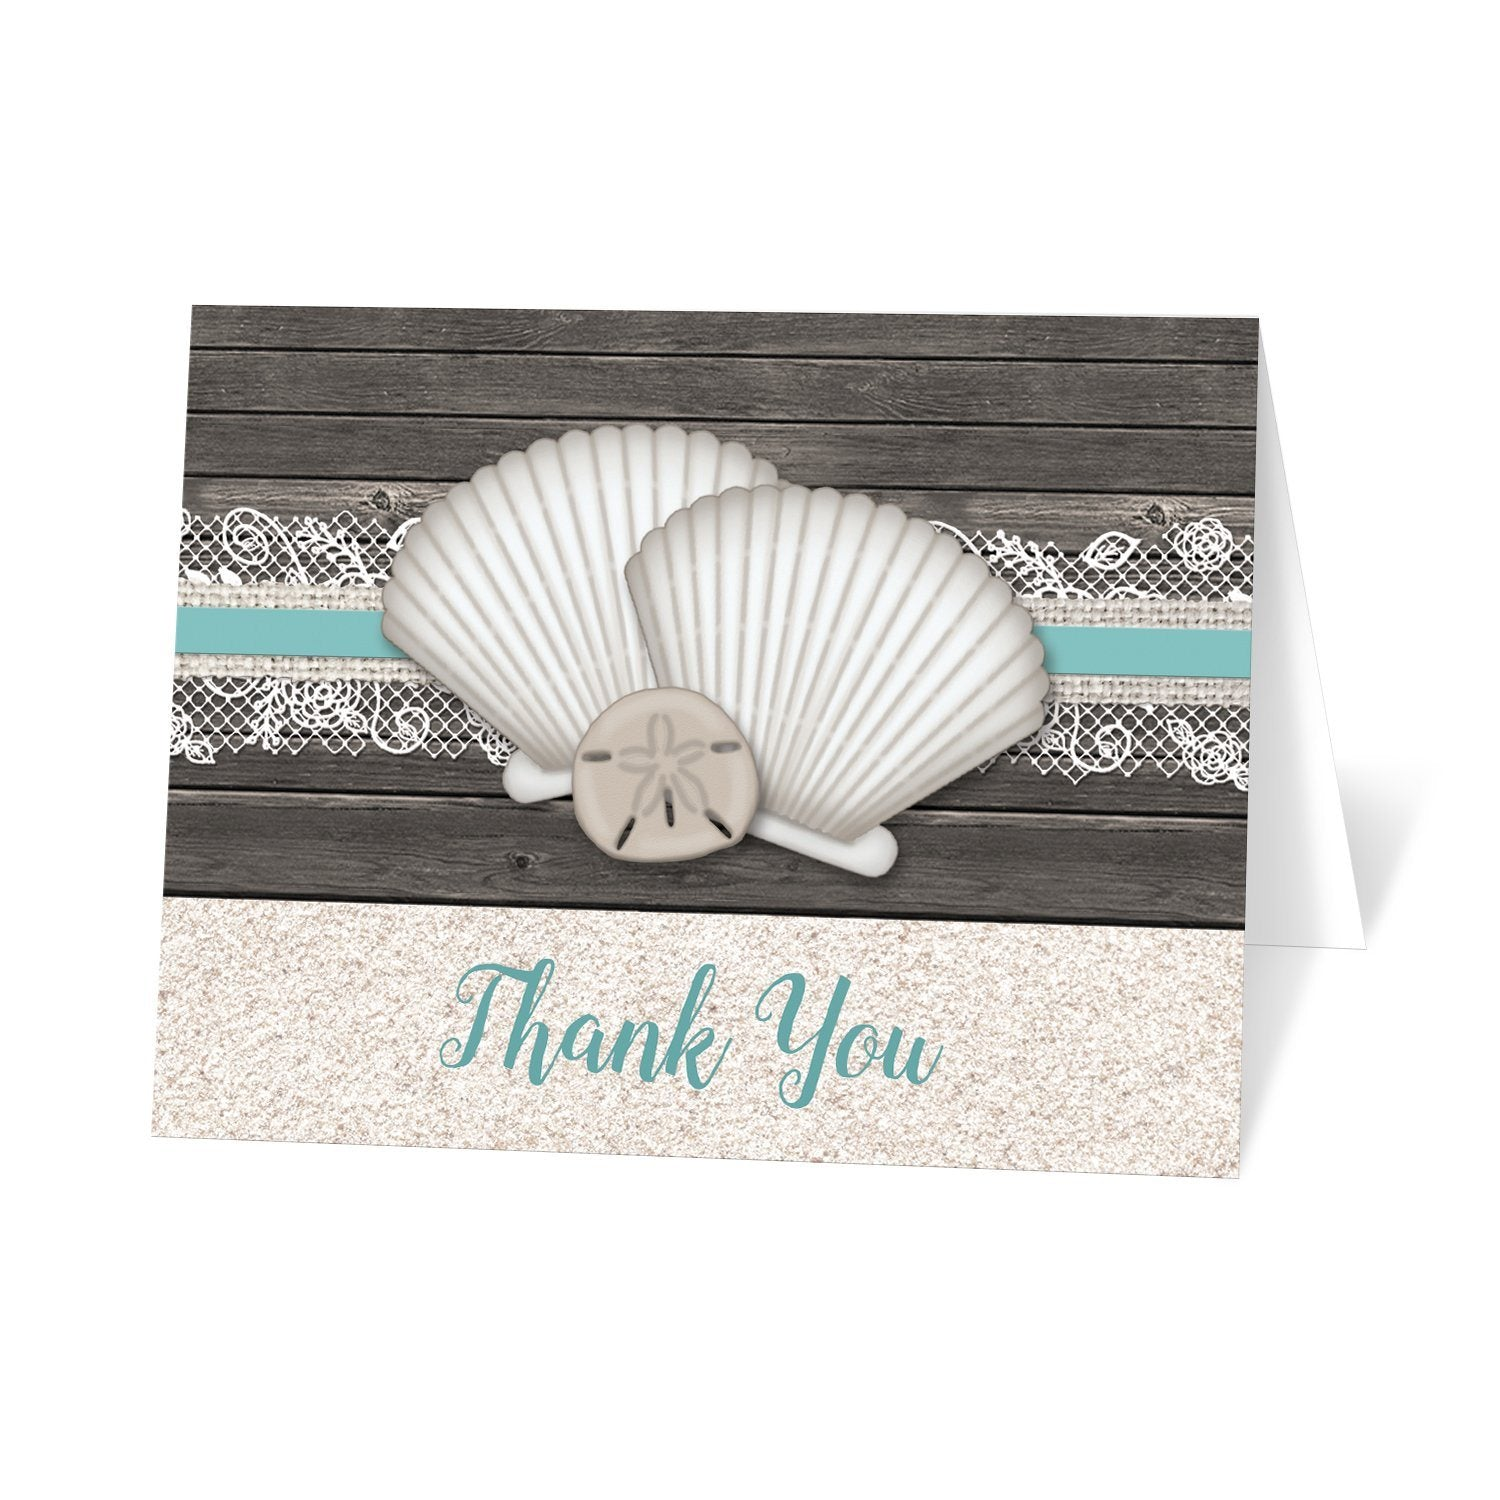 Seashell Lace Wood and Sand Teal Beach Thank You Cards at Artistically Invited